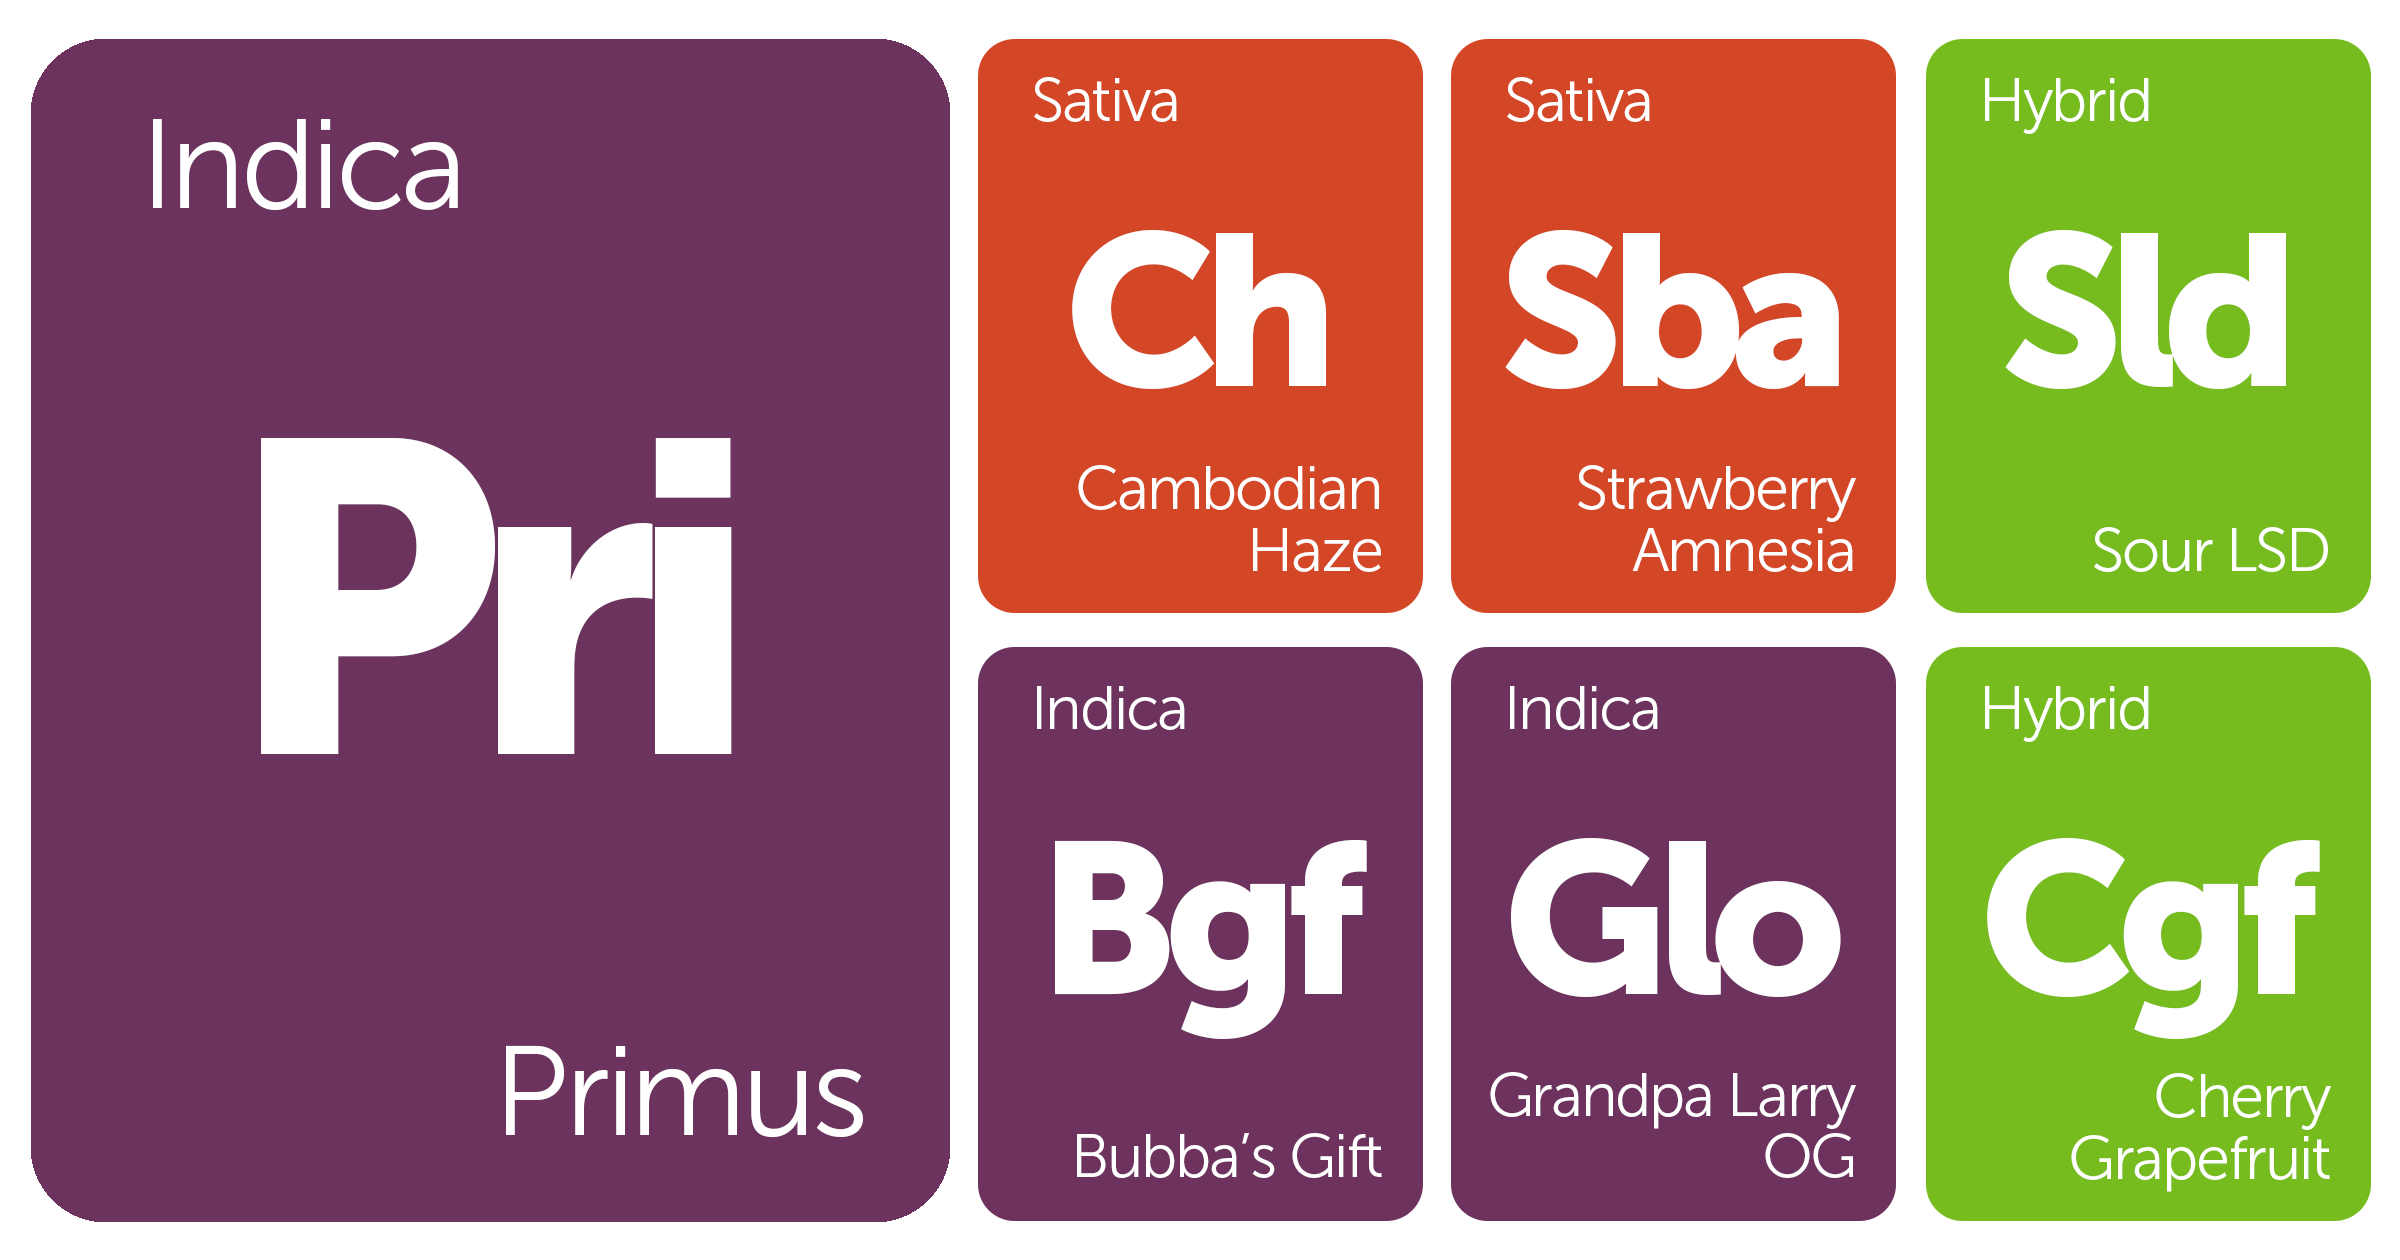 New Strains Alert: Primus, Sour LSD, Strawberry Amnesia, Bubba's Gift, and More